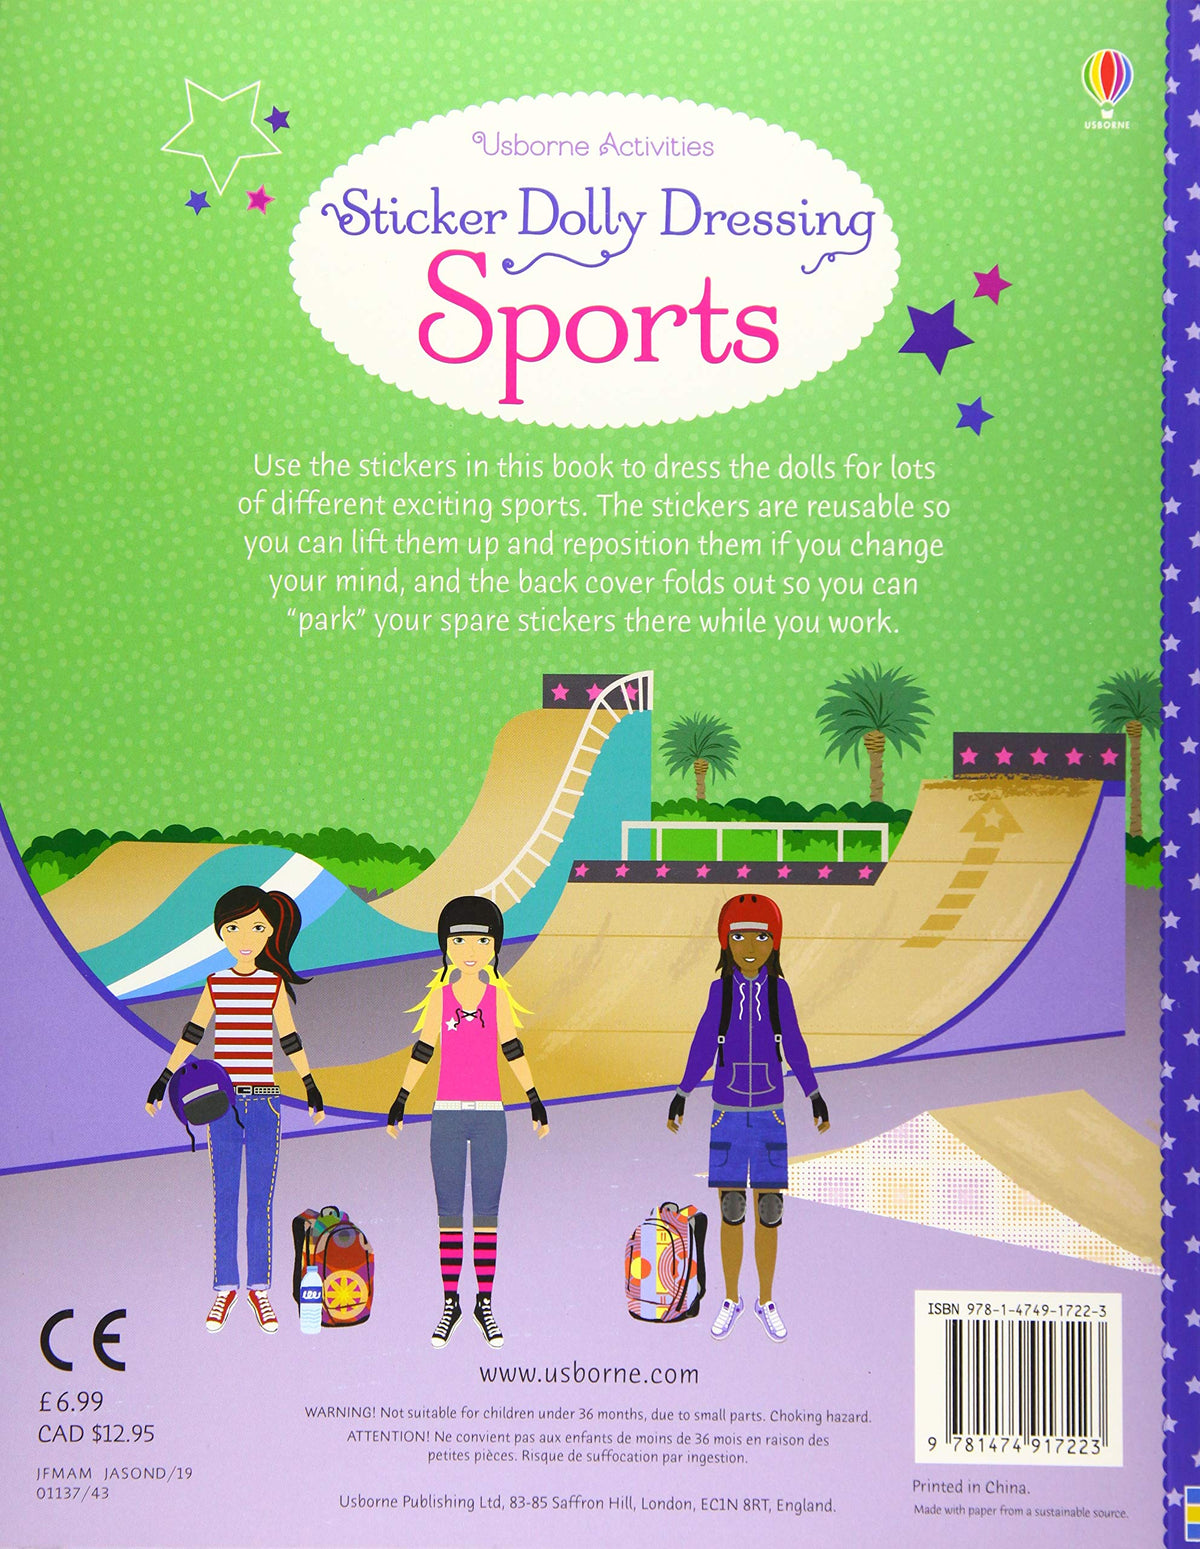 Sticker Dolly Dressing Sports